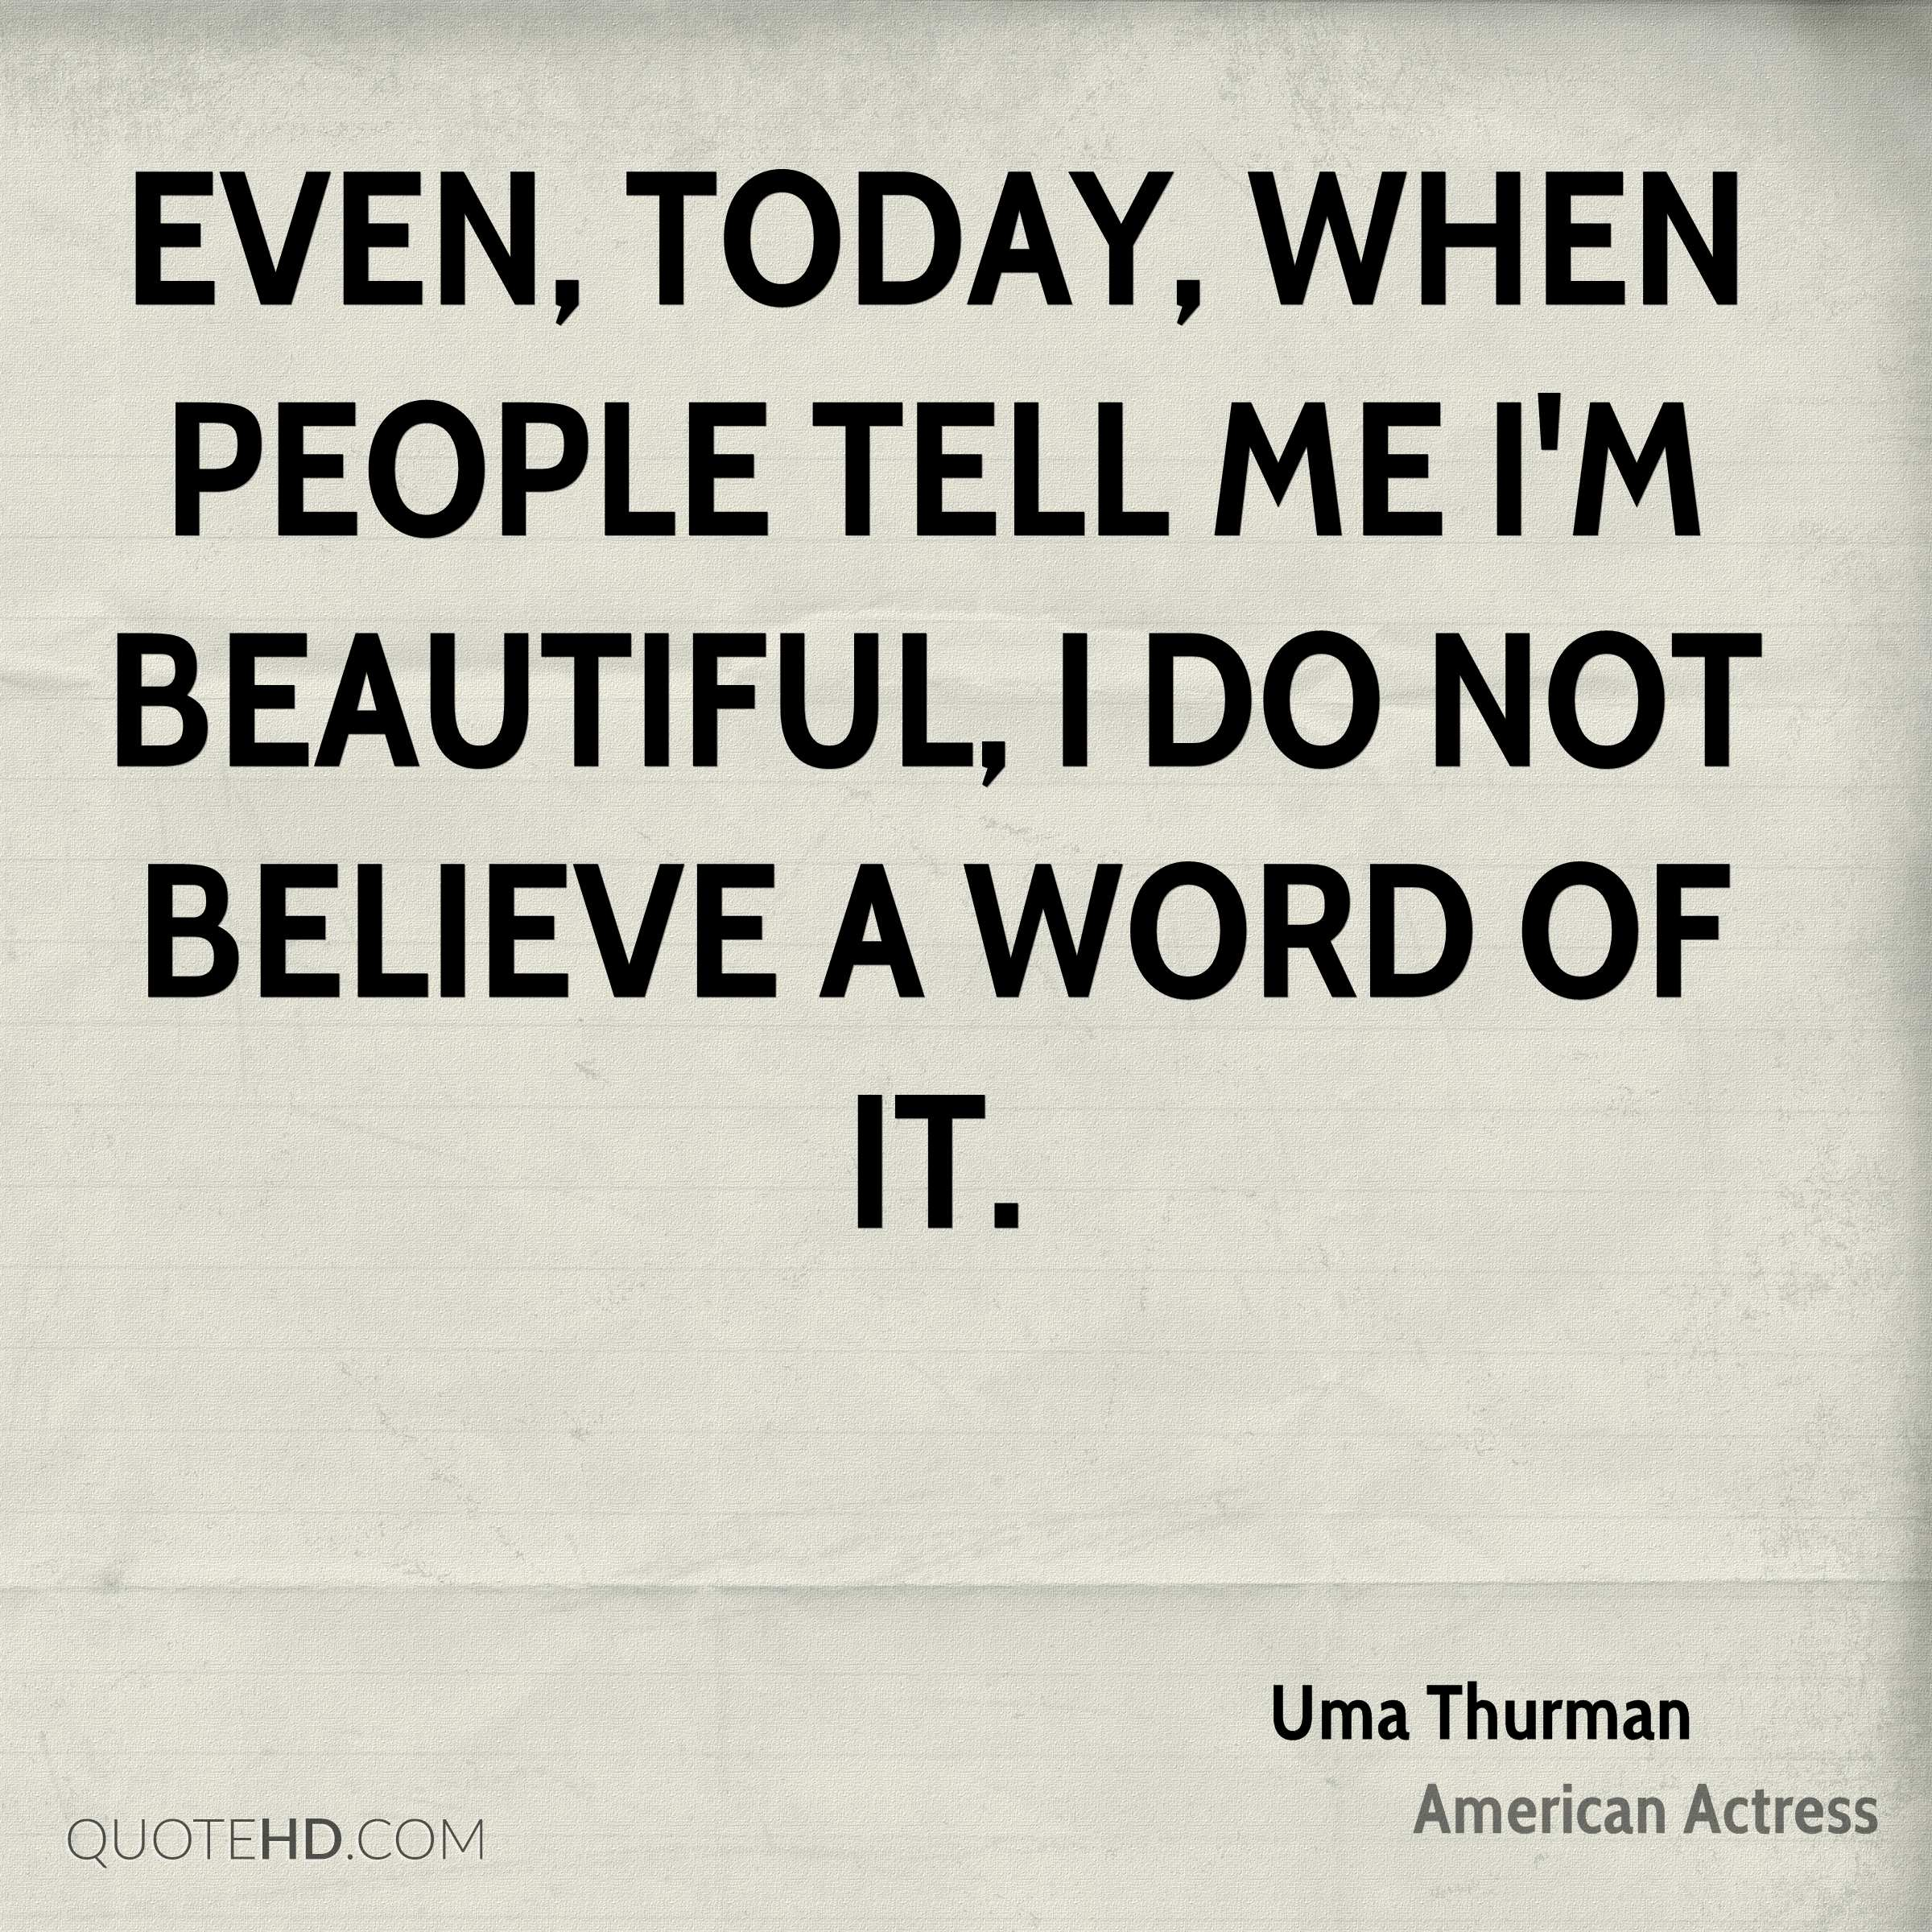 Even, today, when people tell me I'm beautiful, I do not believe a word of it.